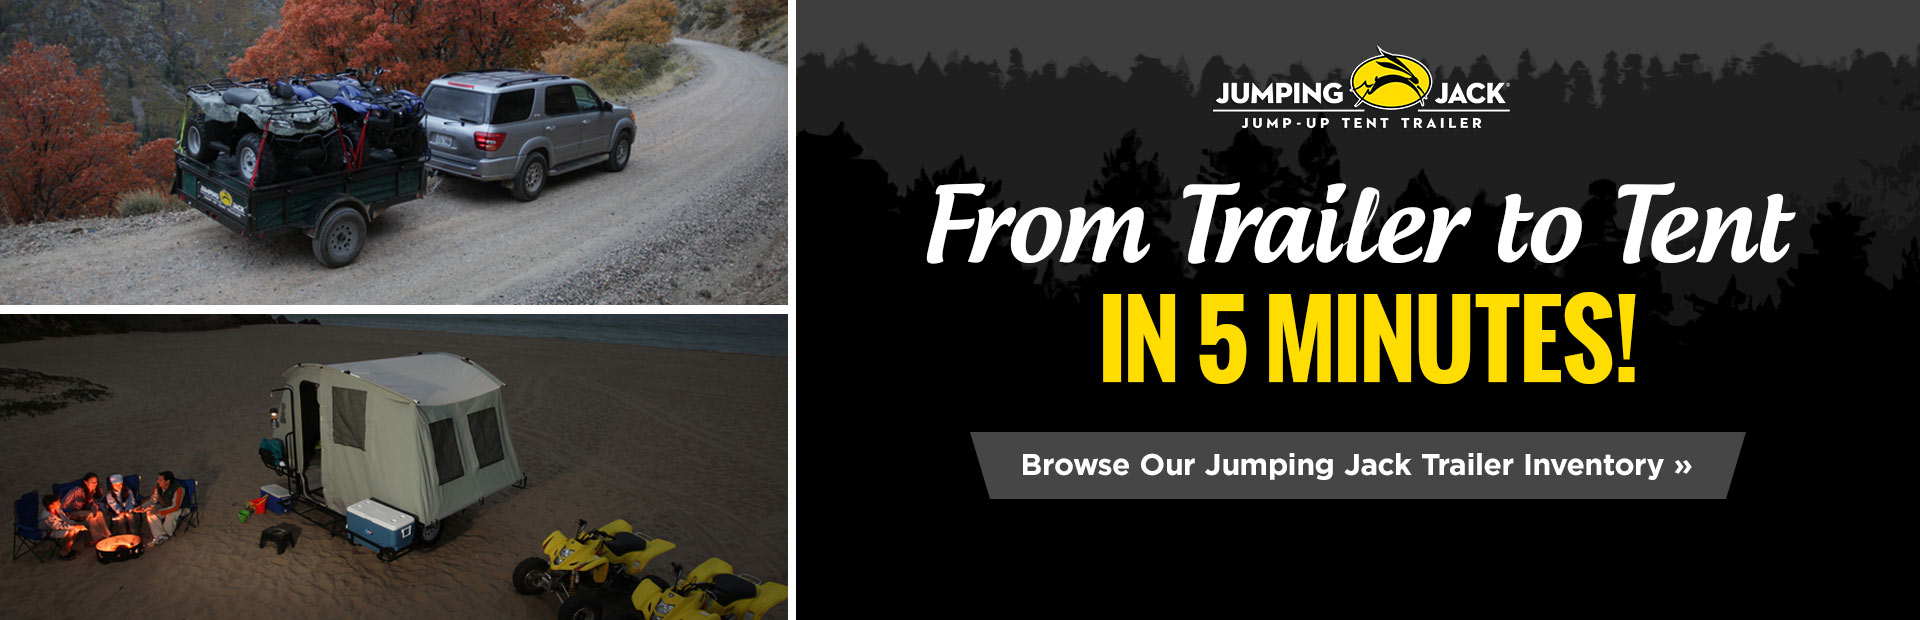 Browse our Jumping Jack trailer inventory!